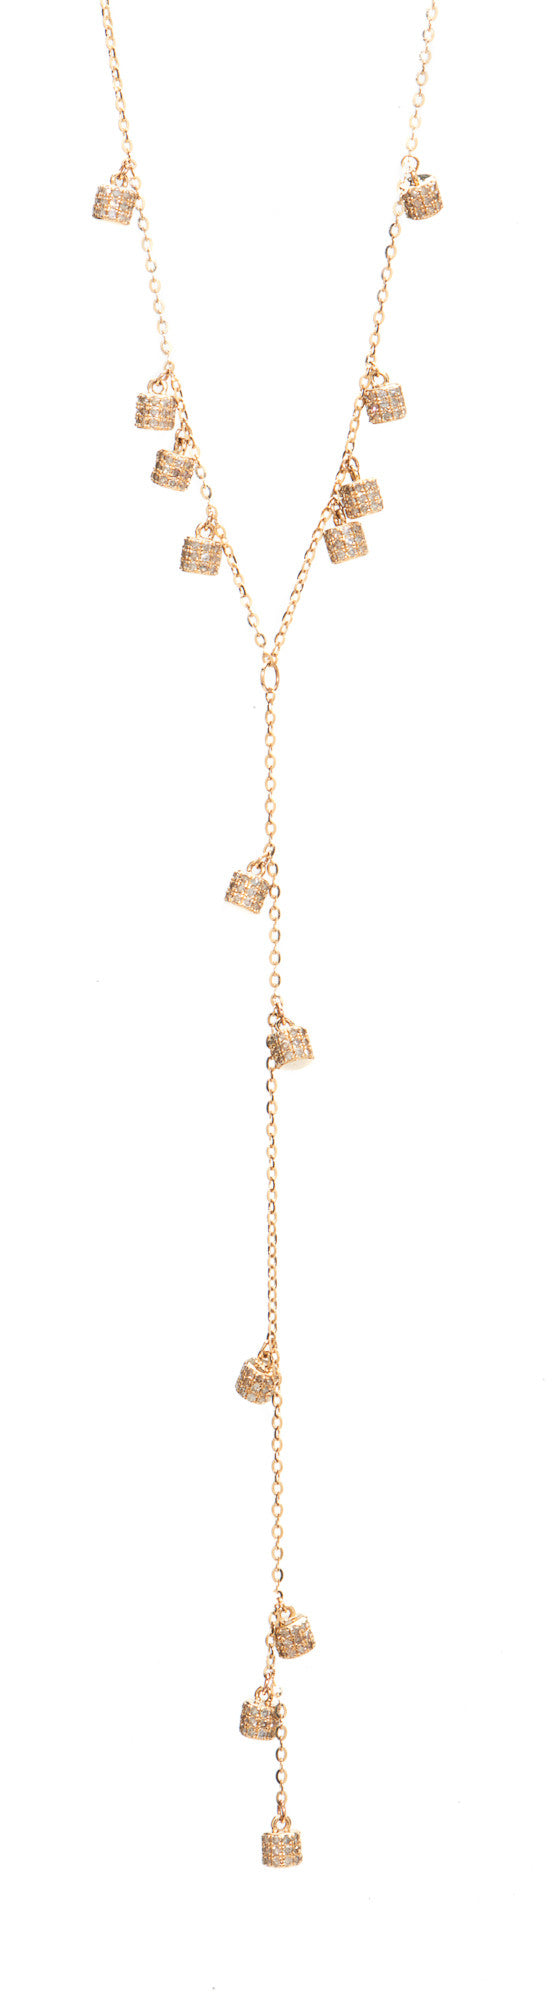 Diamond Fairy Dust Lariat Necklace